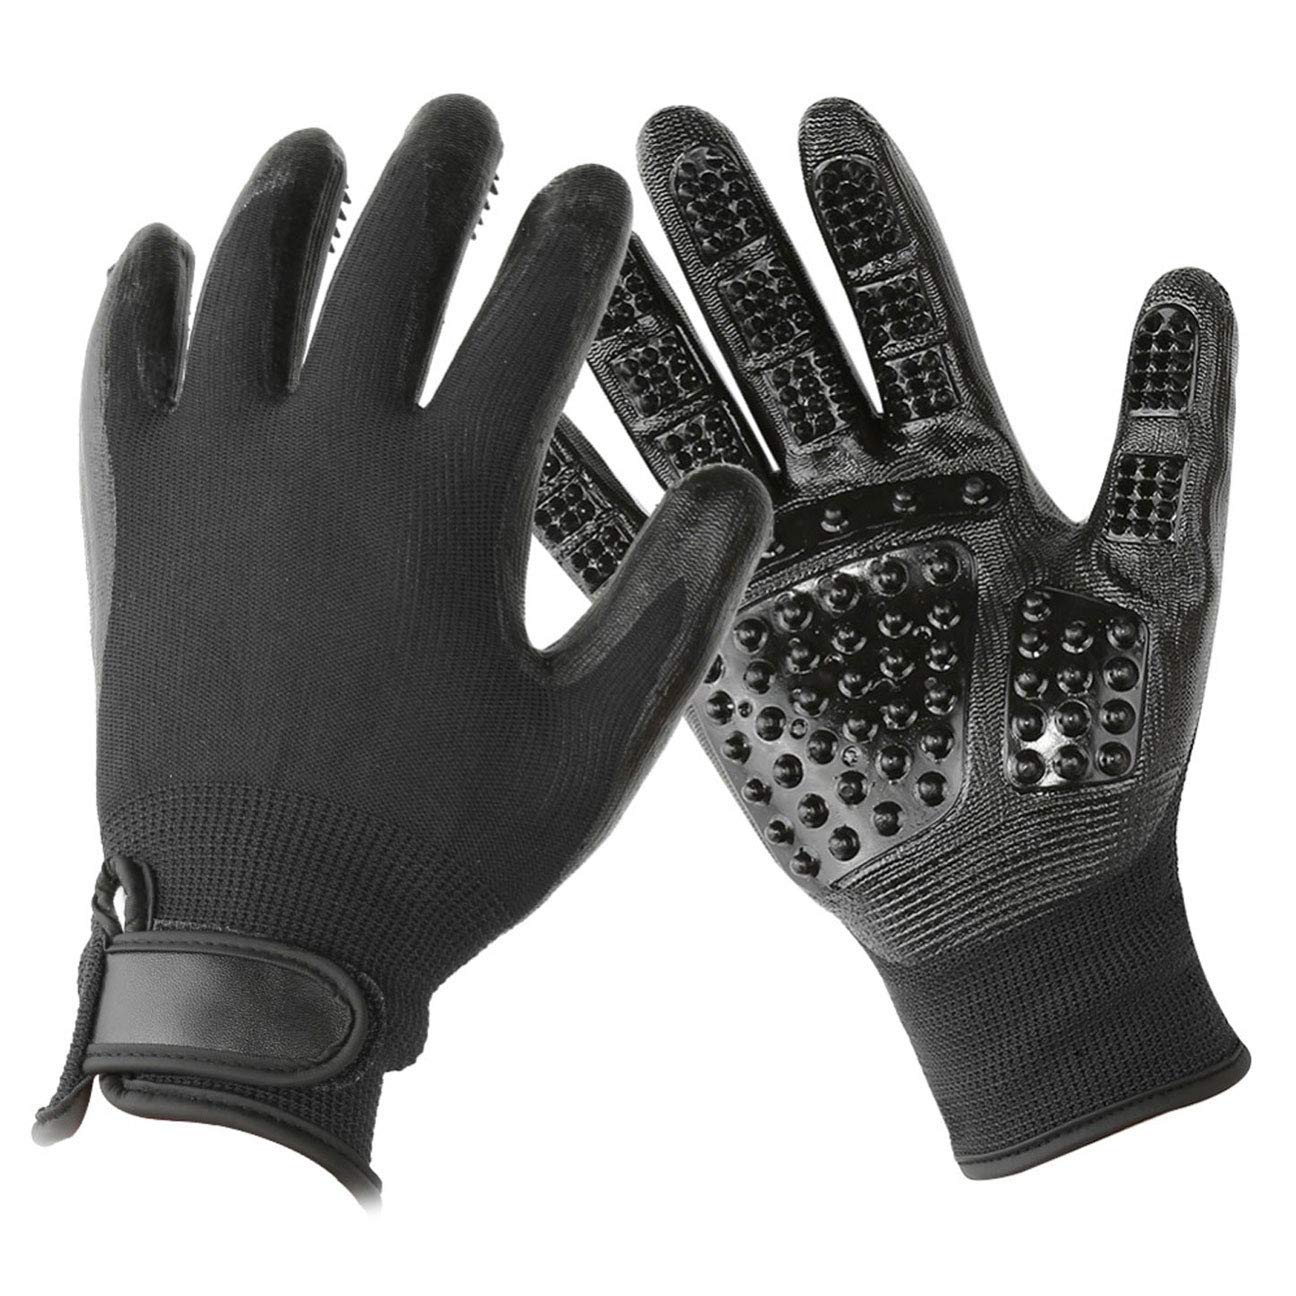 CHUN BO Pet Grooming Gloves - Enhanced Five-Finger Design - Suitable for Cats, Dogs and Horses - Long and Short Hairs - Excess Hair,Black by CHUN BO